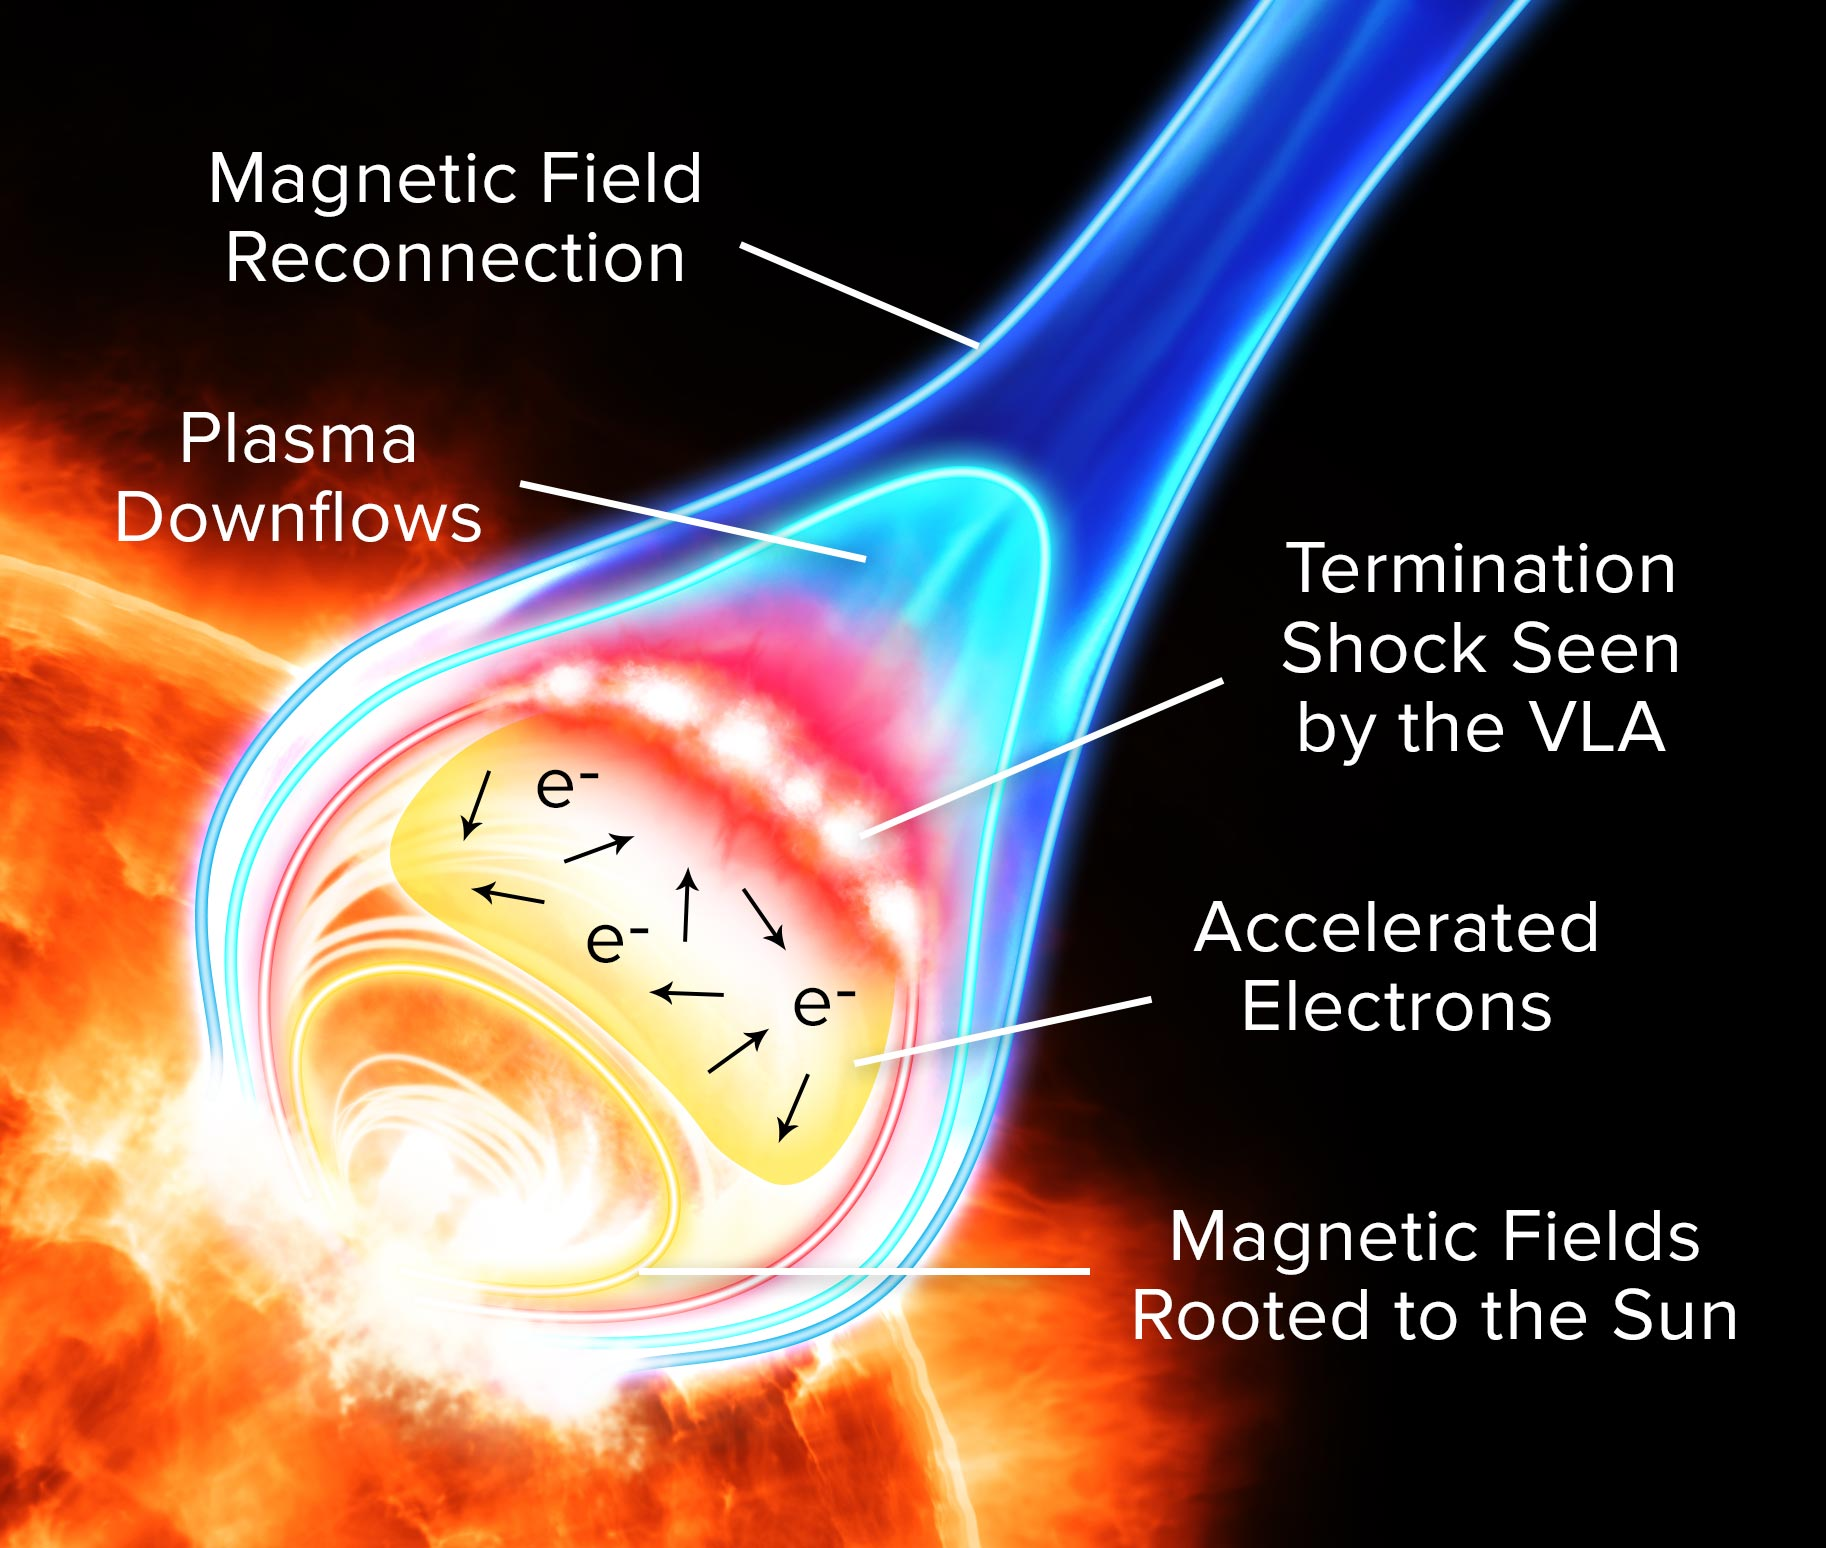 A termination shock is depicted between plasmas downflows and a field of accelerated electrons in this diagram of particle acceleration in a solar flare.